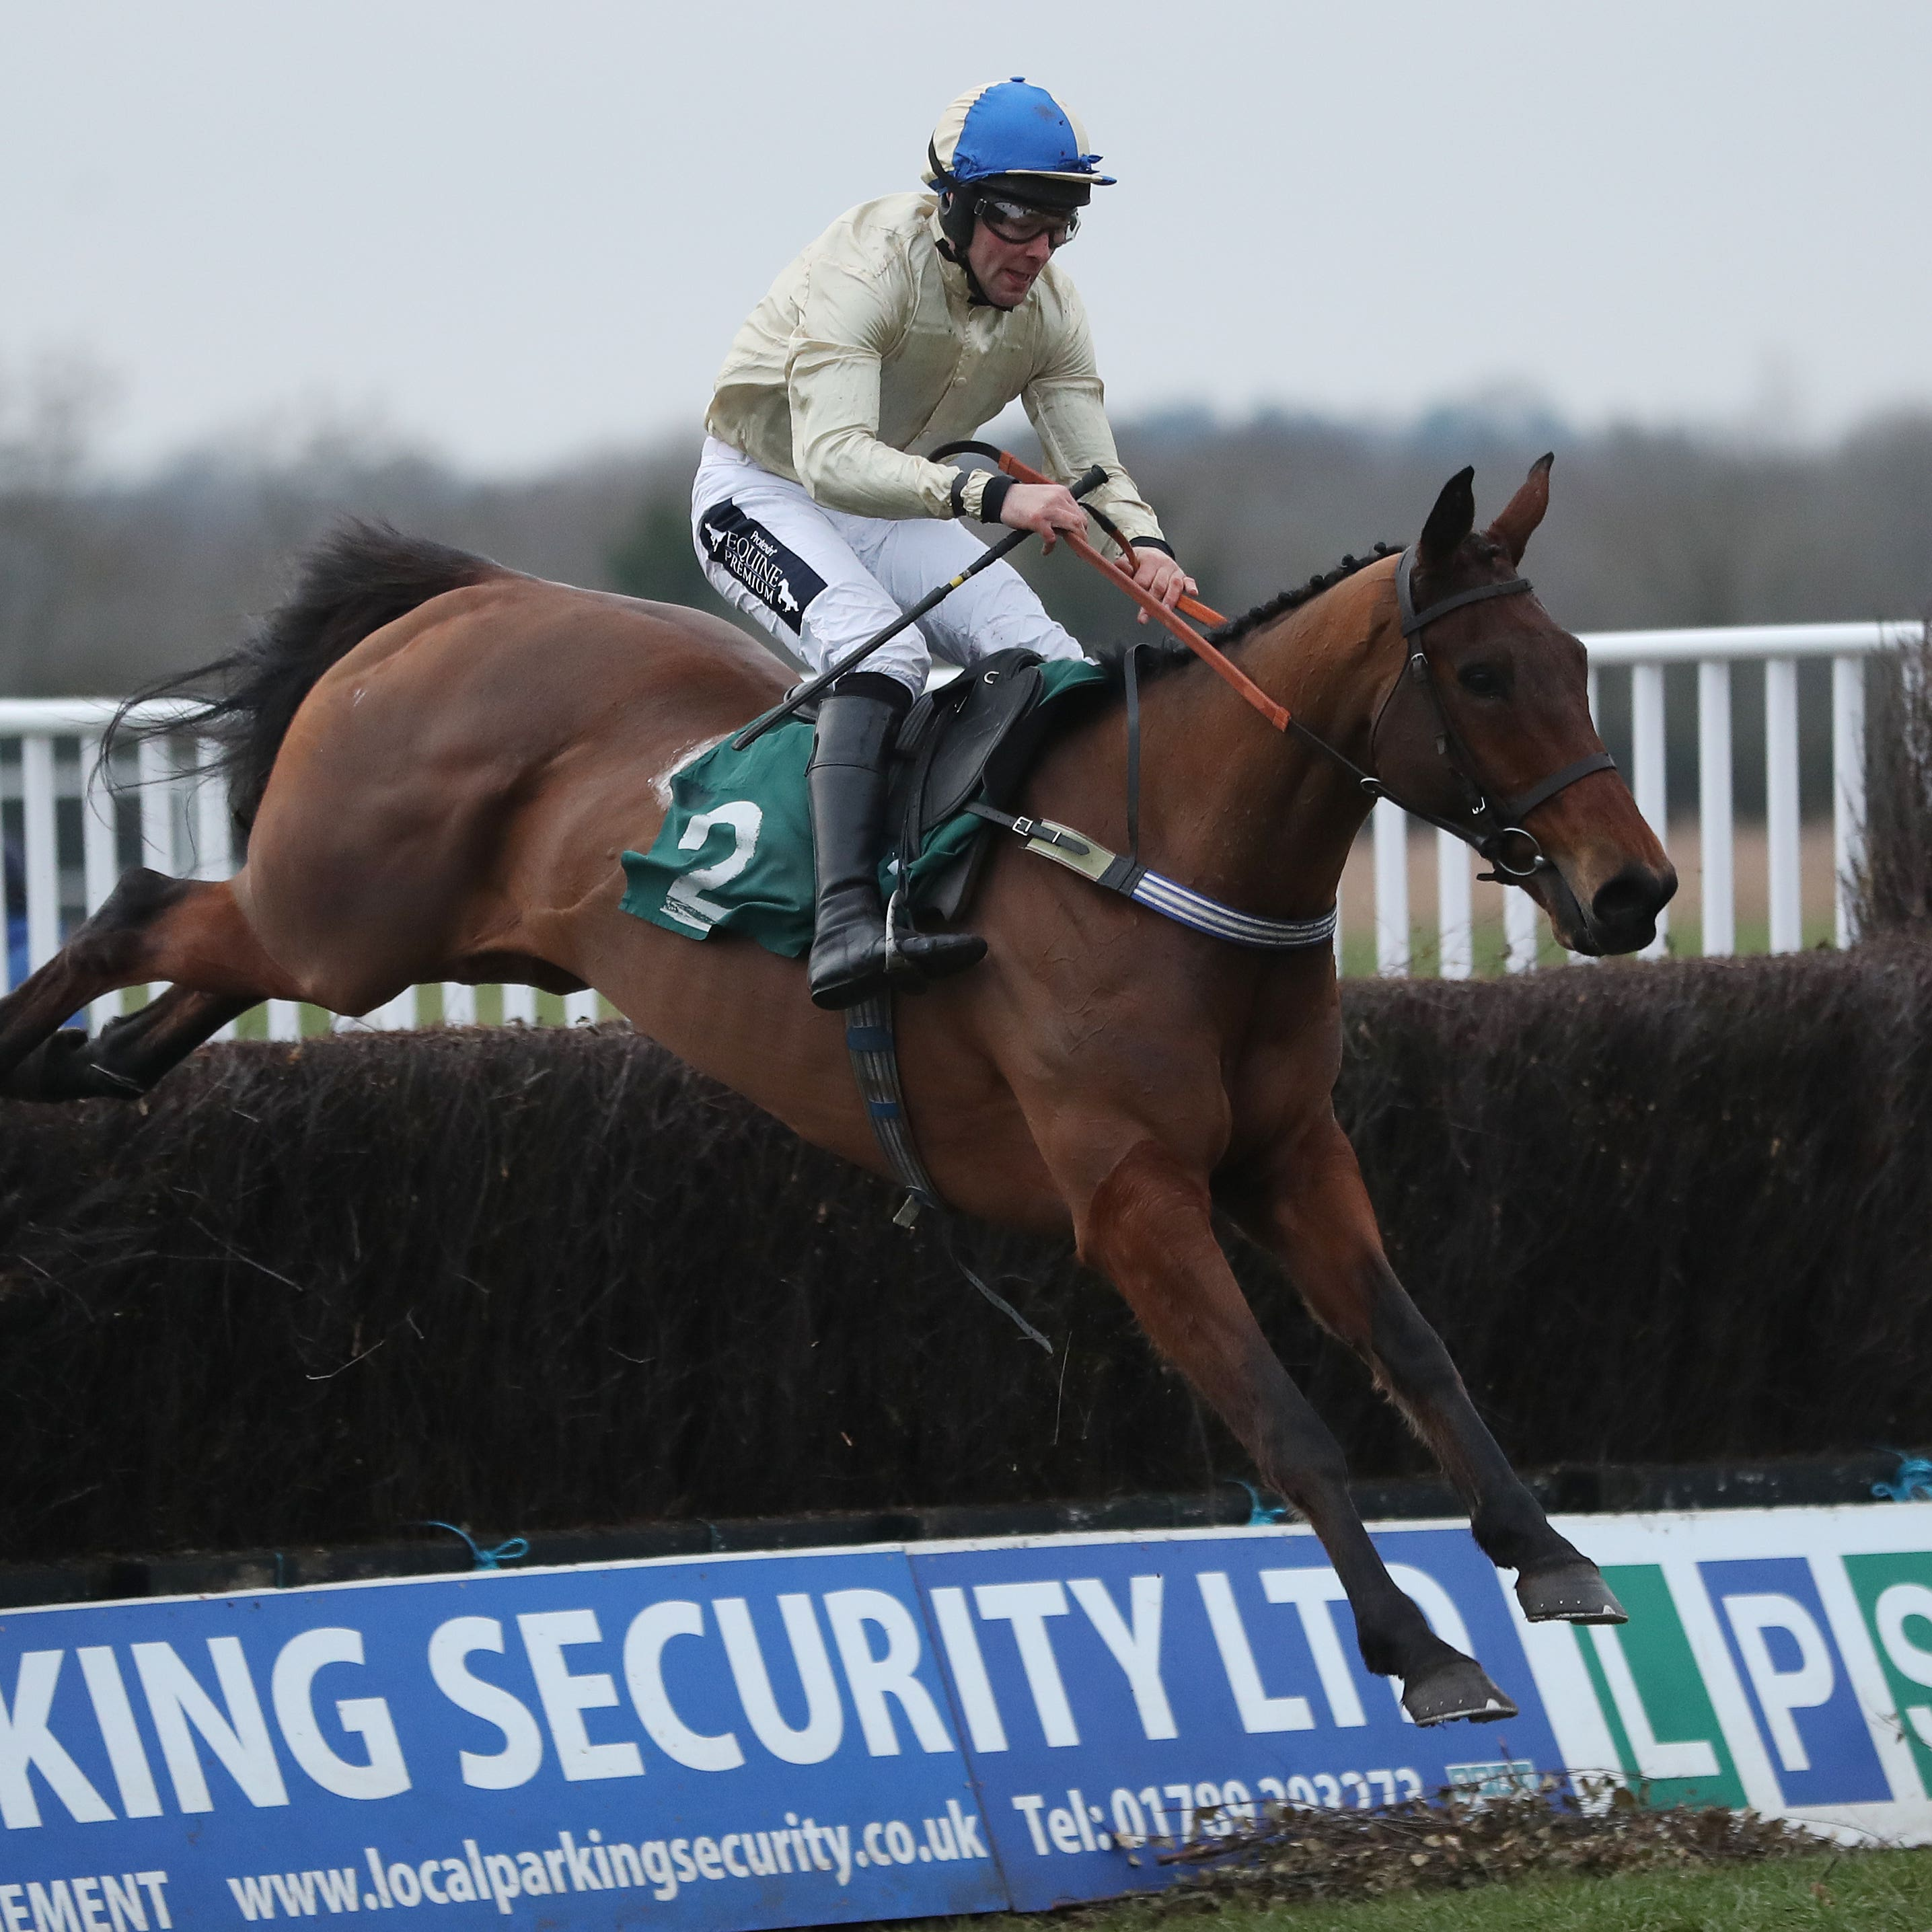 Hazel Hill is set to head straight to the St James's Place Foxhunter Chase at the Cheltenham Festival